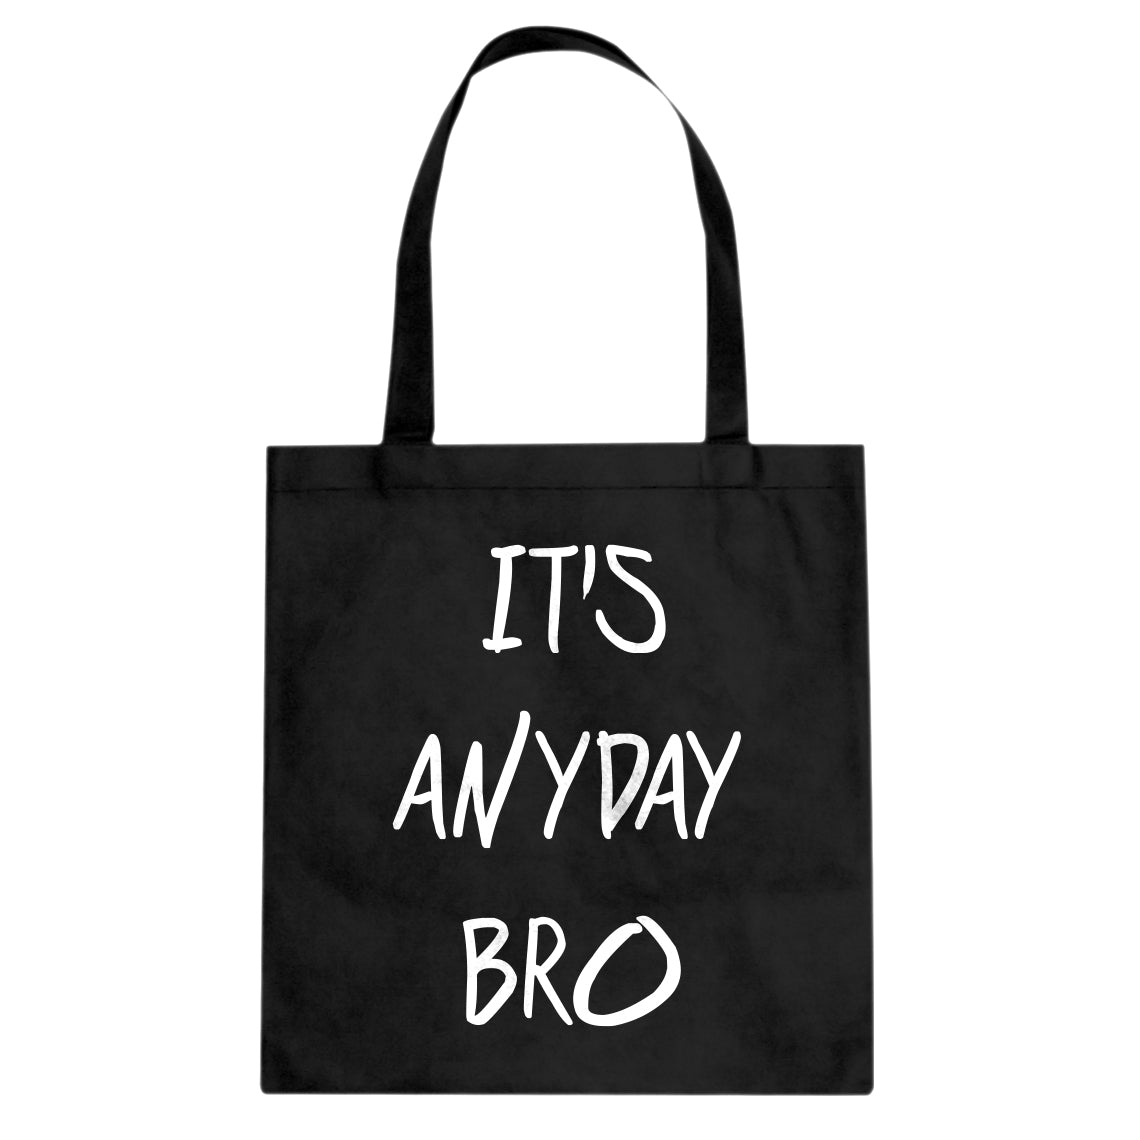 Tote Its Anyday Bro Canvas Tote Bag